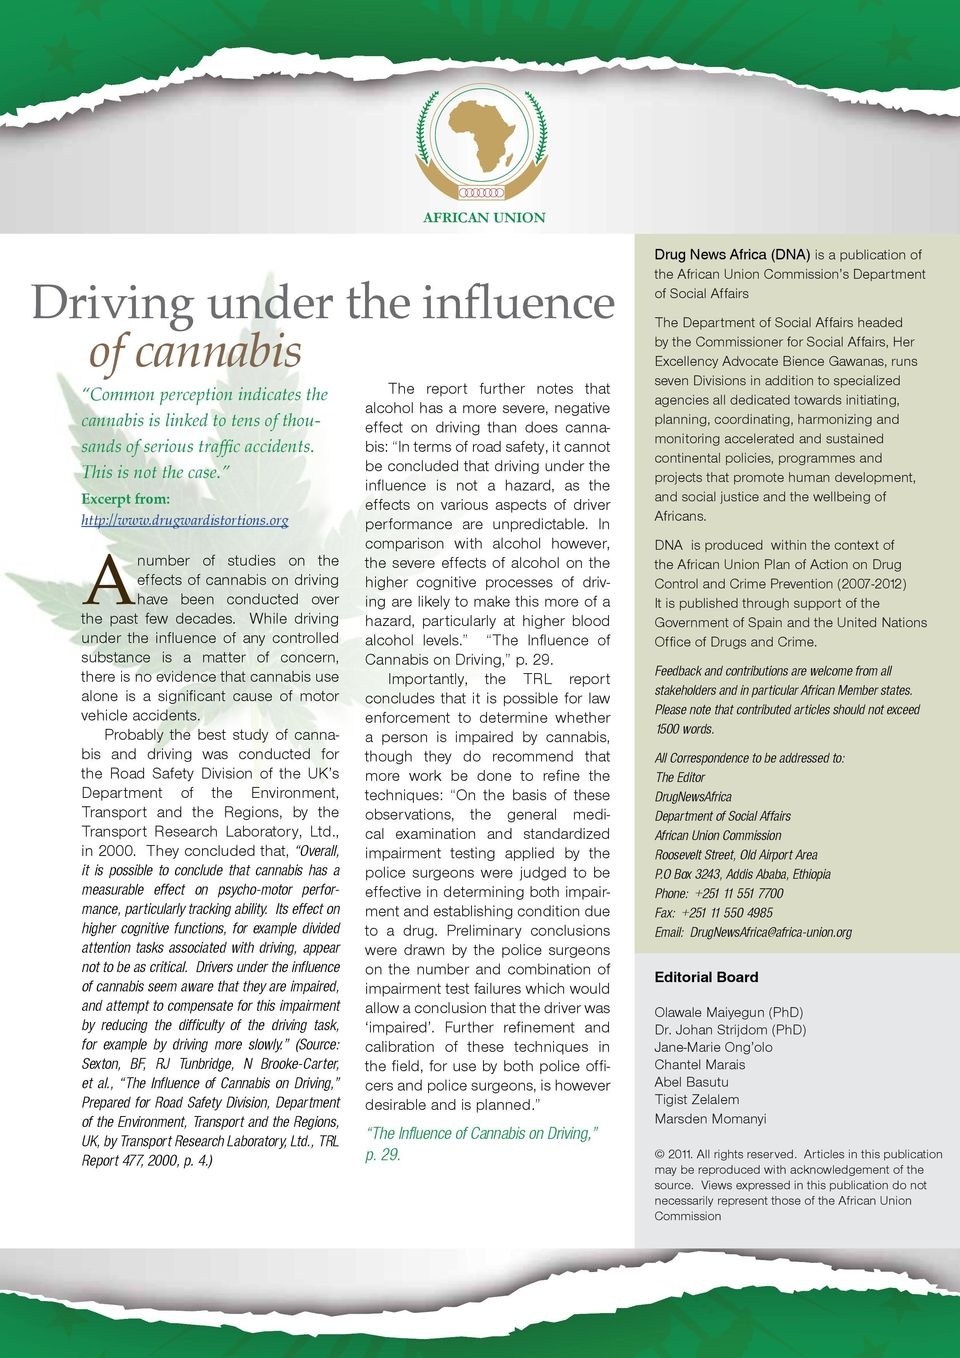 While driving under the influence of any controlled substance is a matter of concern, there is no evidence that cannabis use alone is a significant cause of motor vehicle accidents.